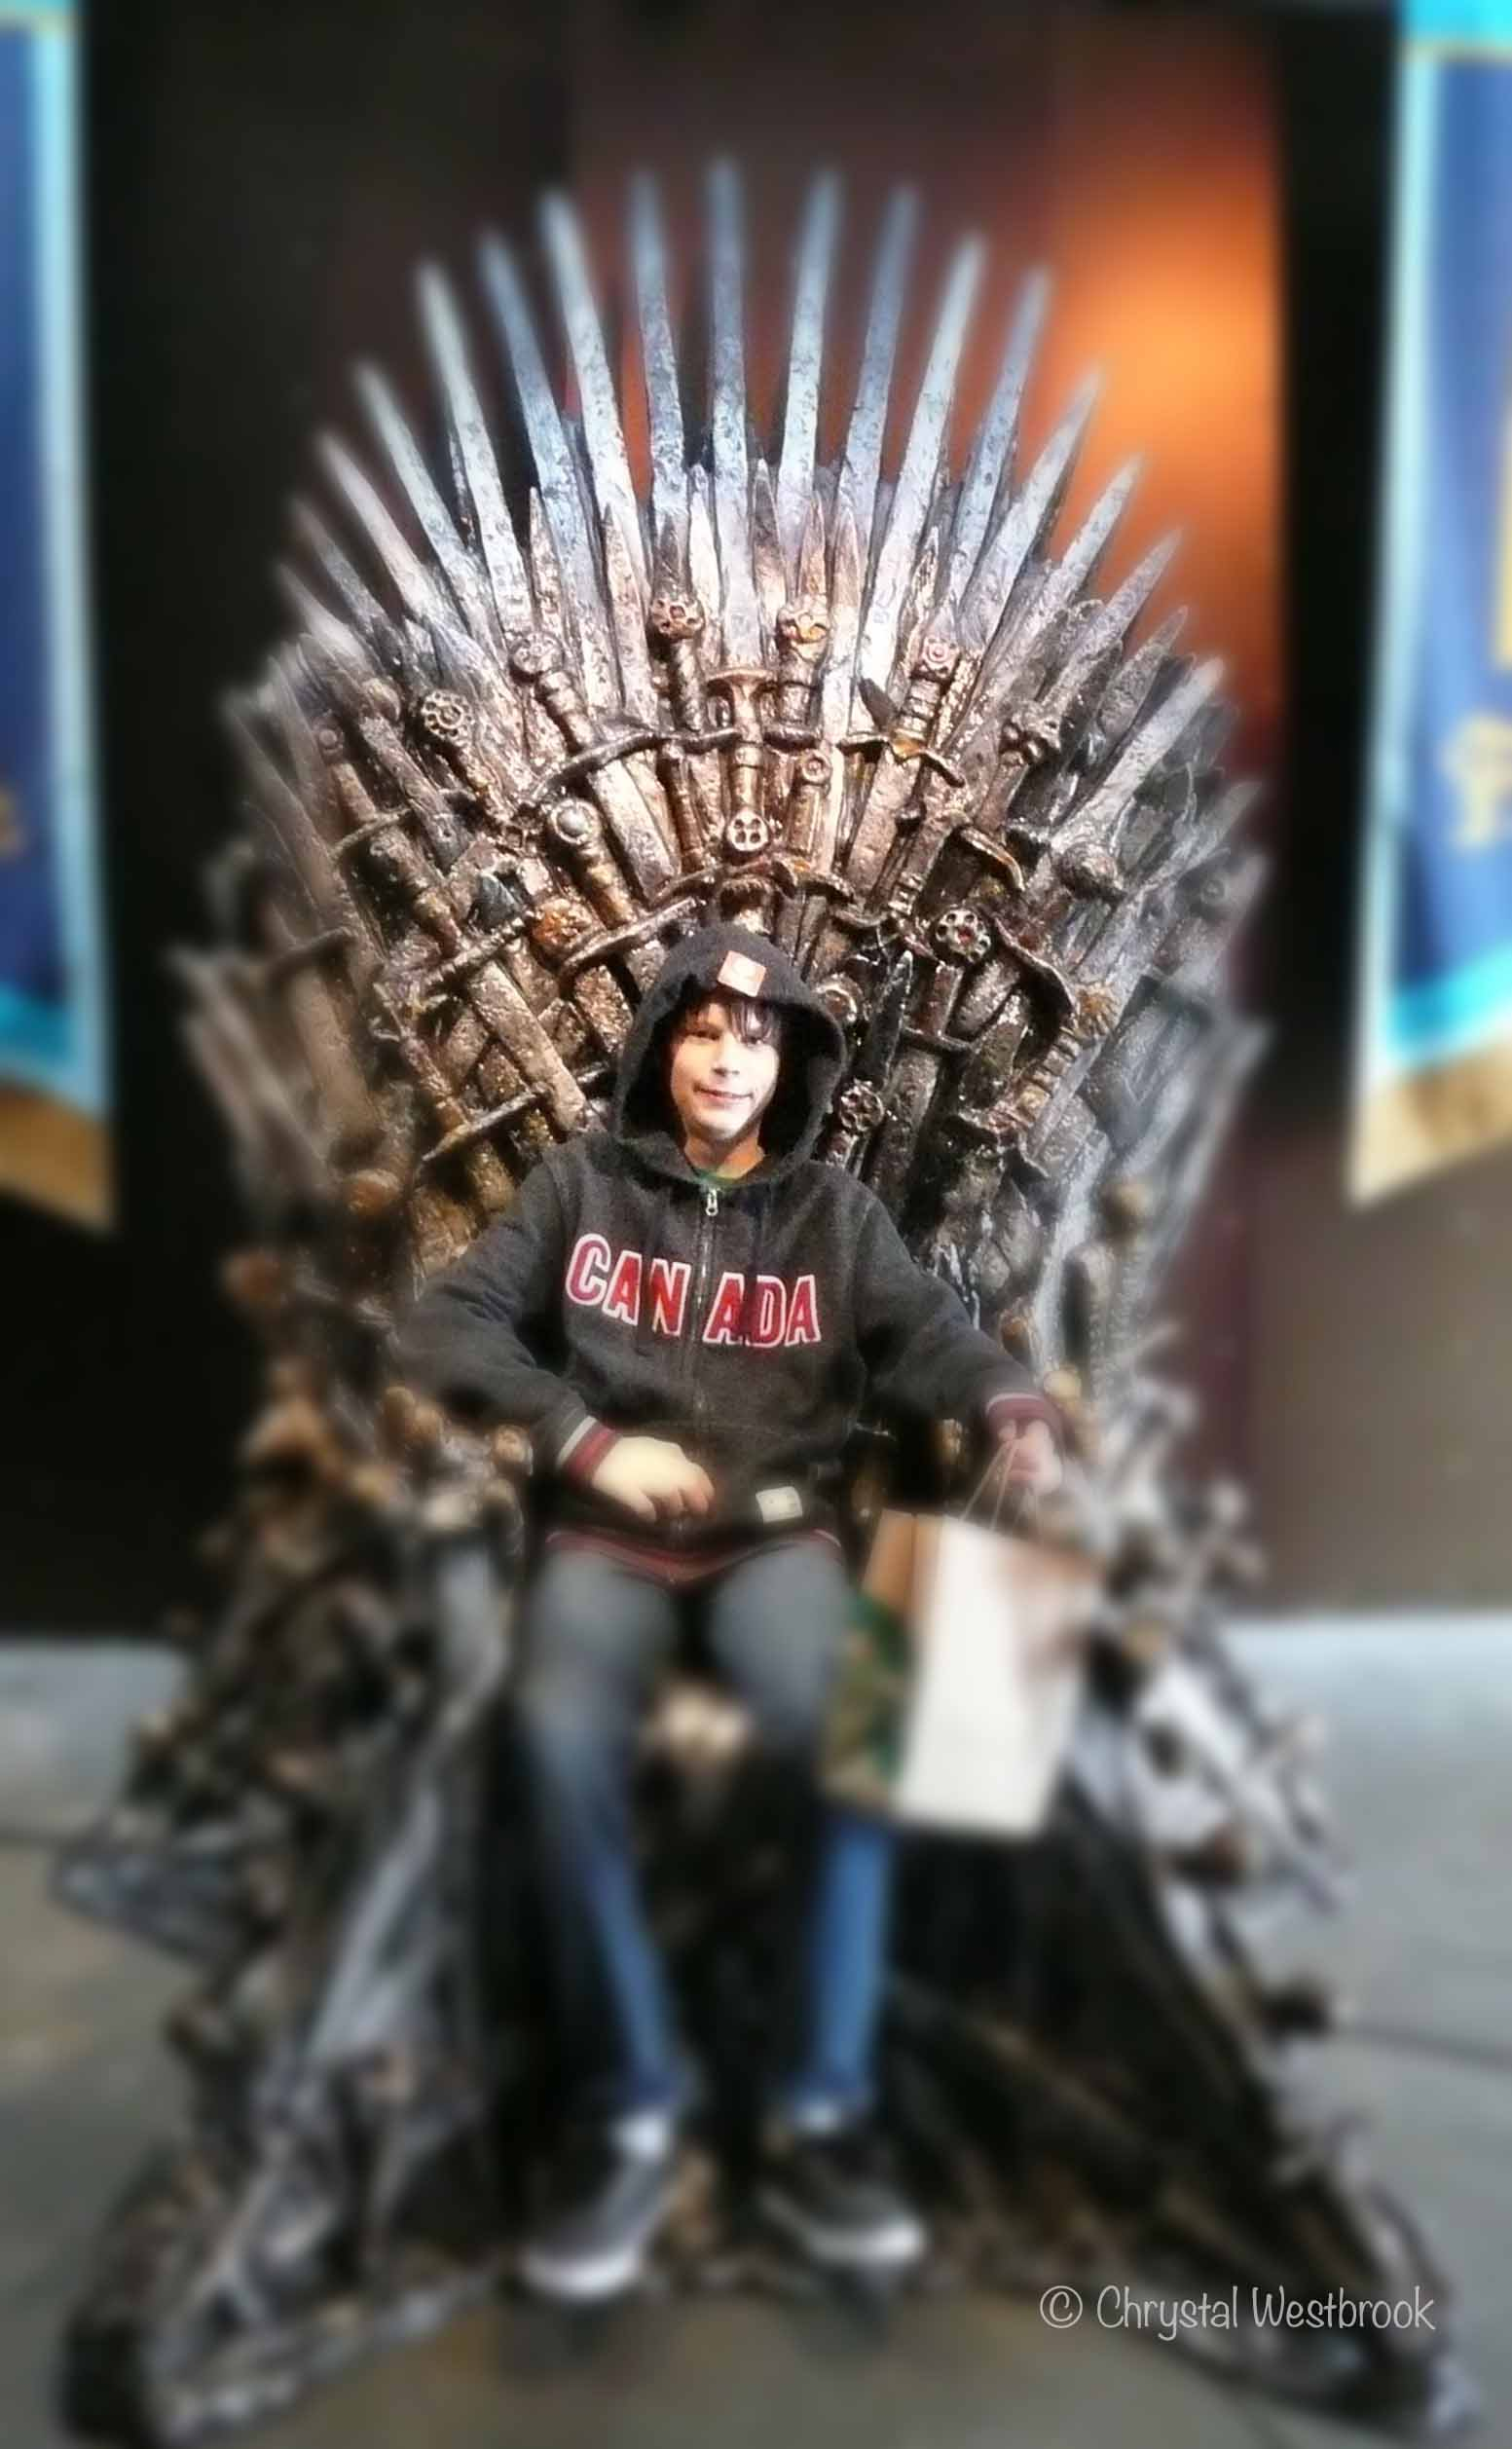 [IMAGE] Boy on a throne